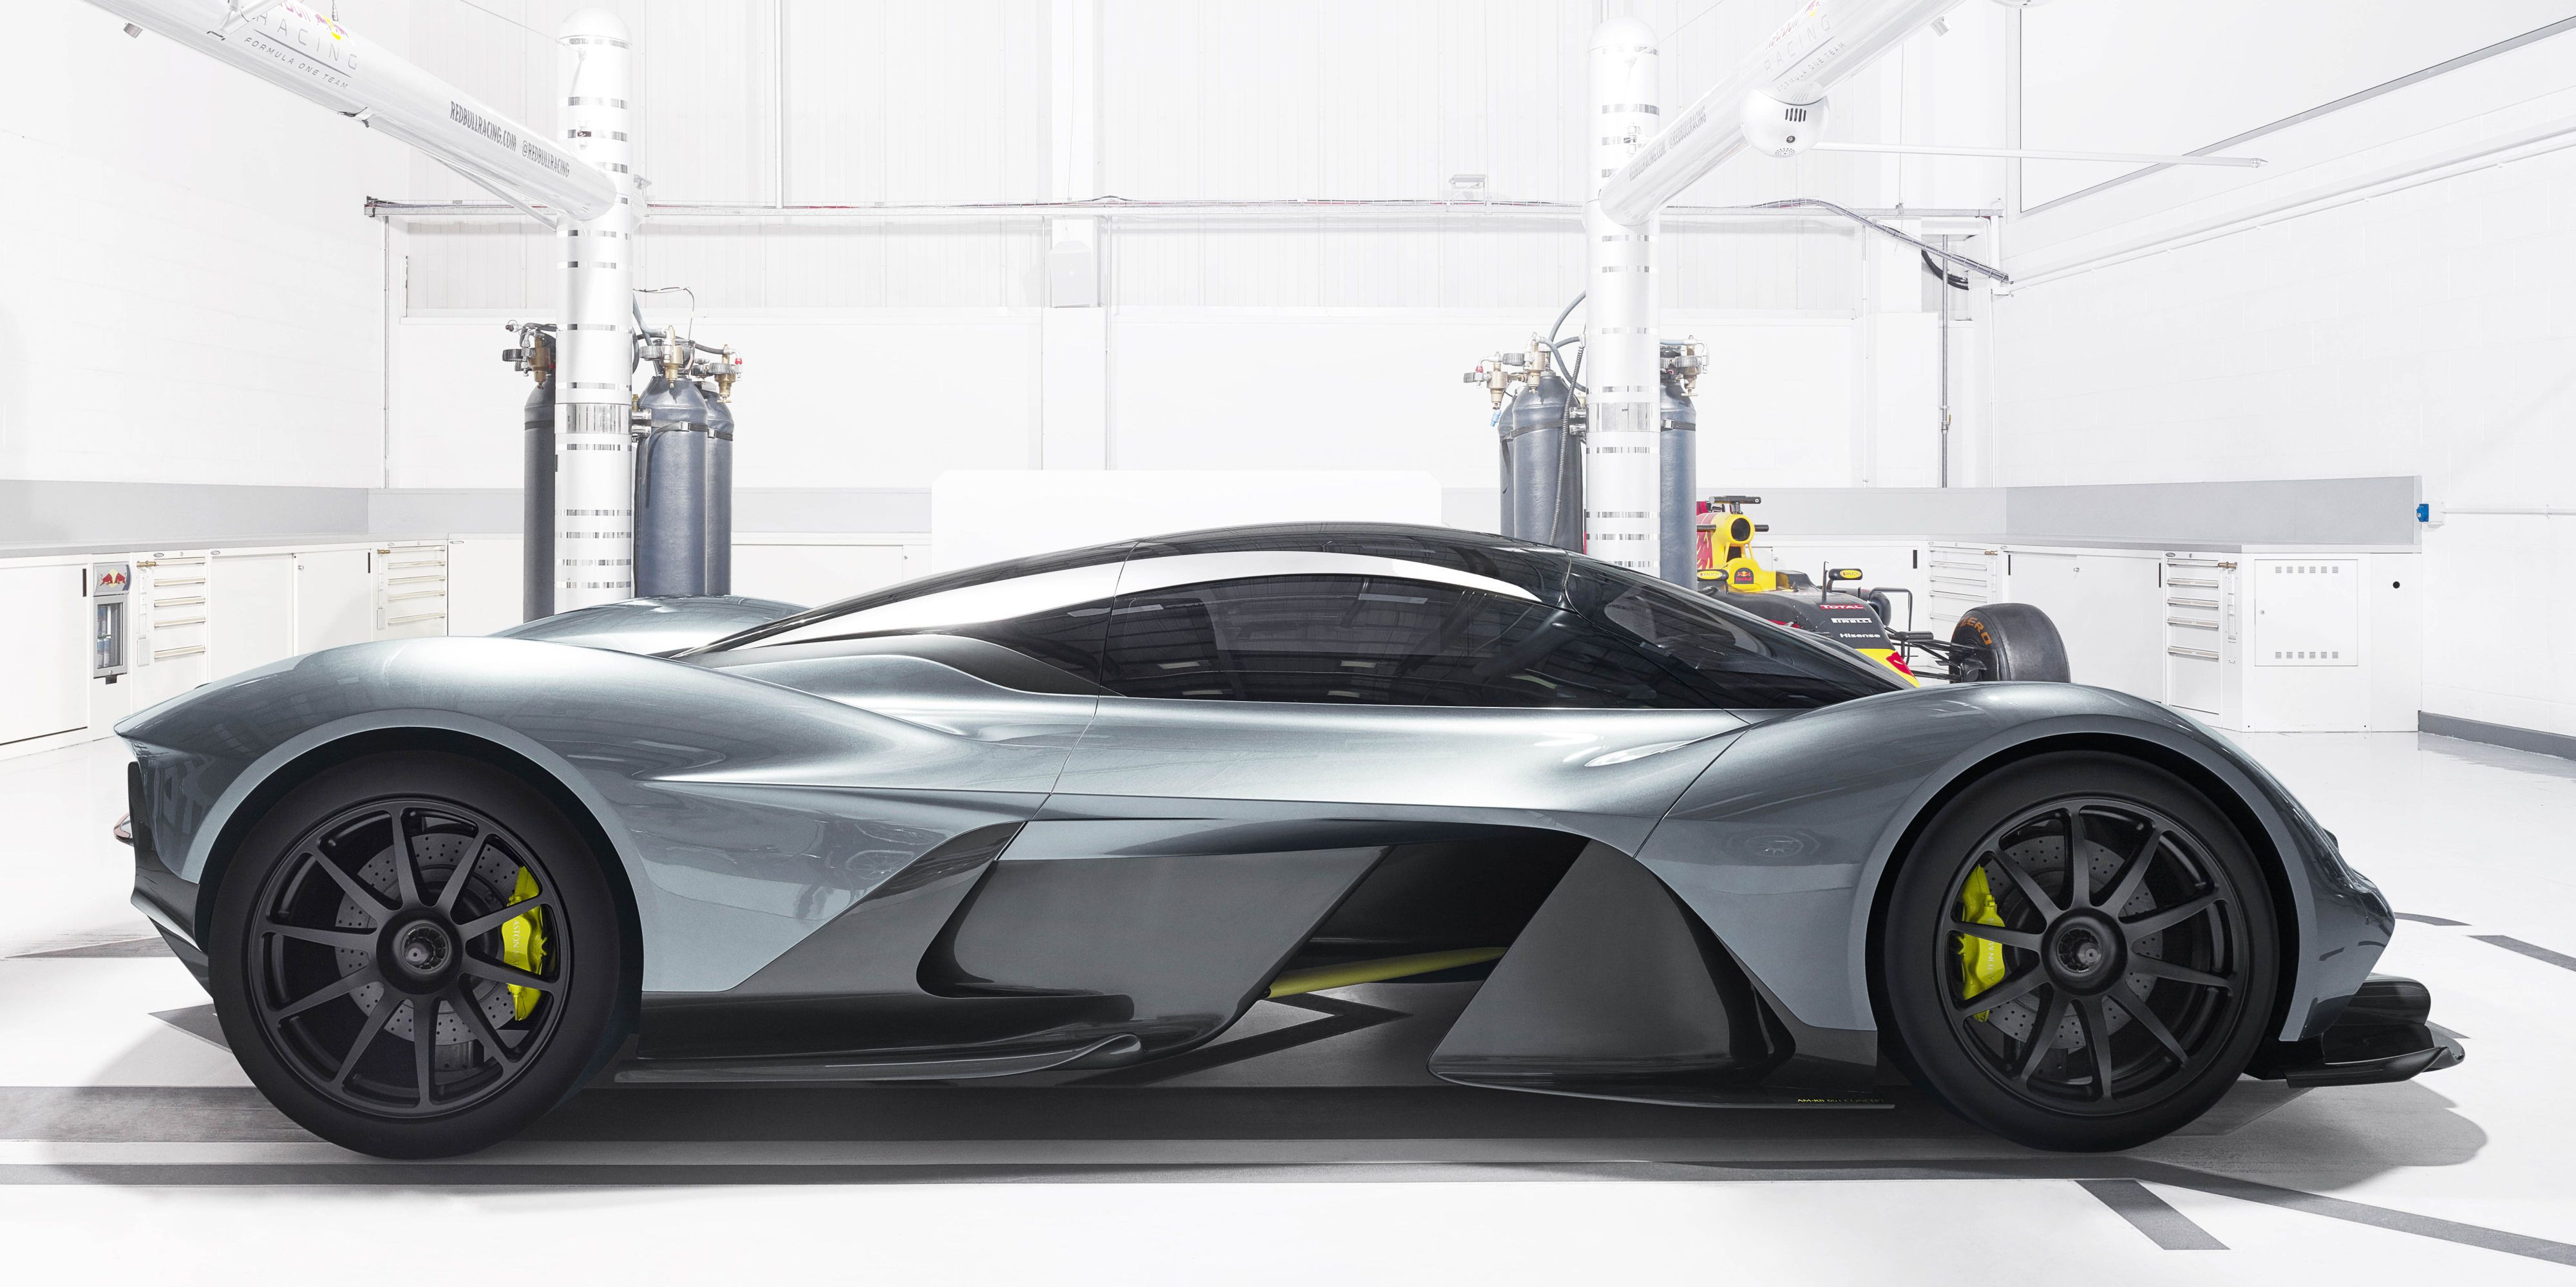 Aston Martin's New Hypercar Engine Will Have a Ludicrously High Redline